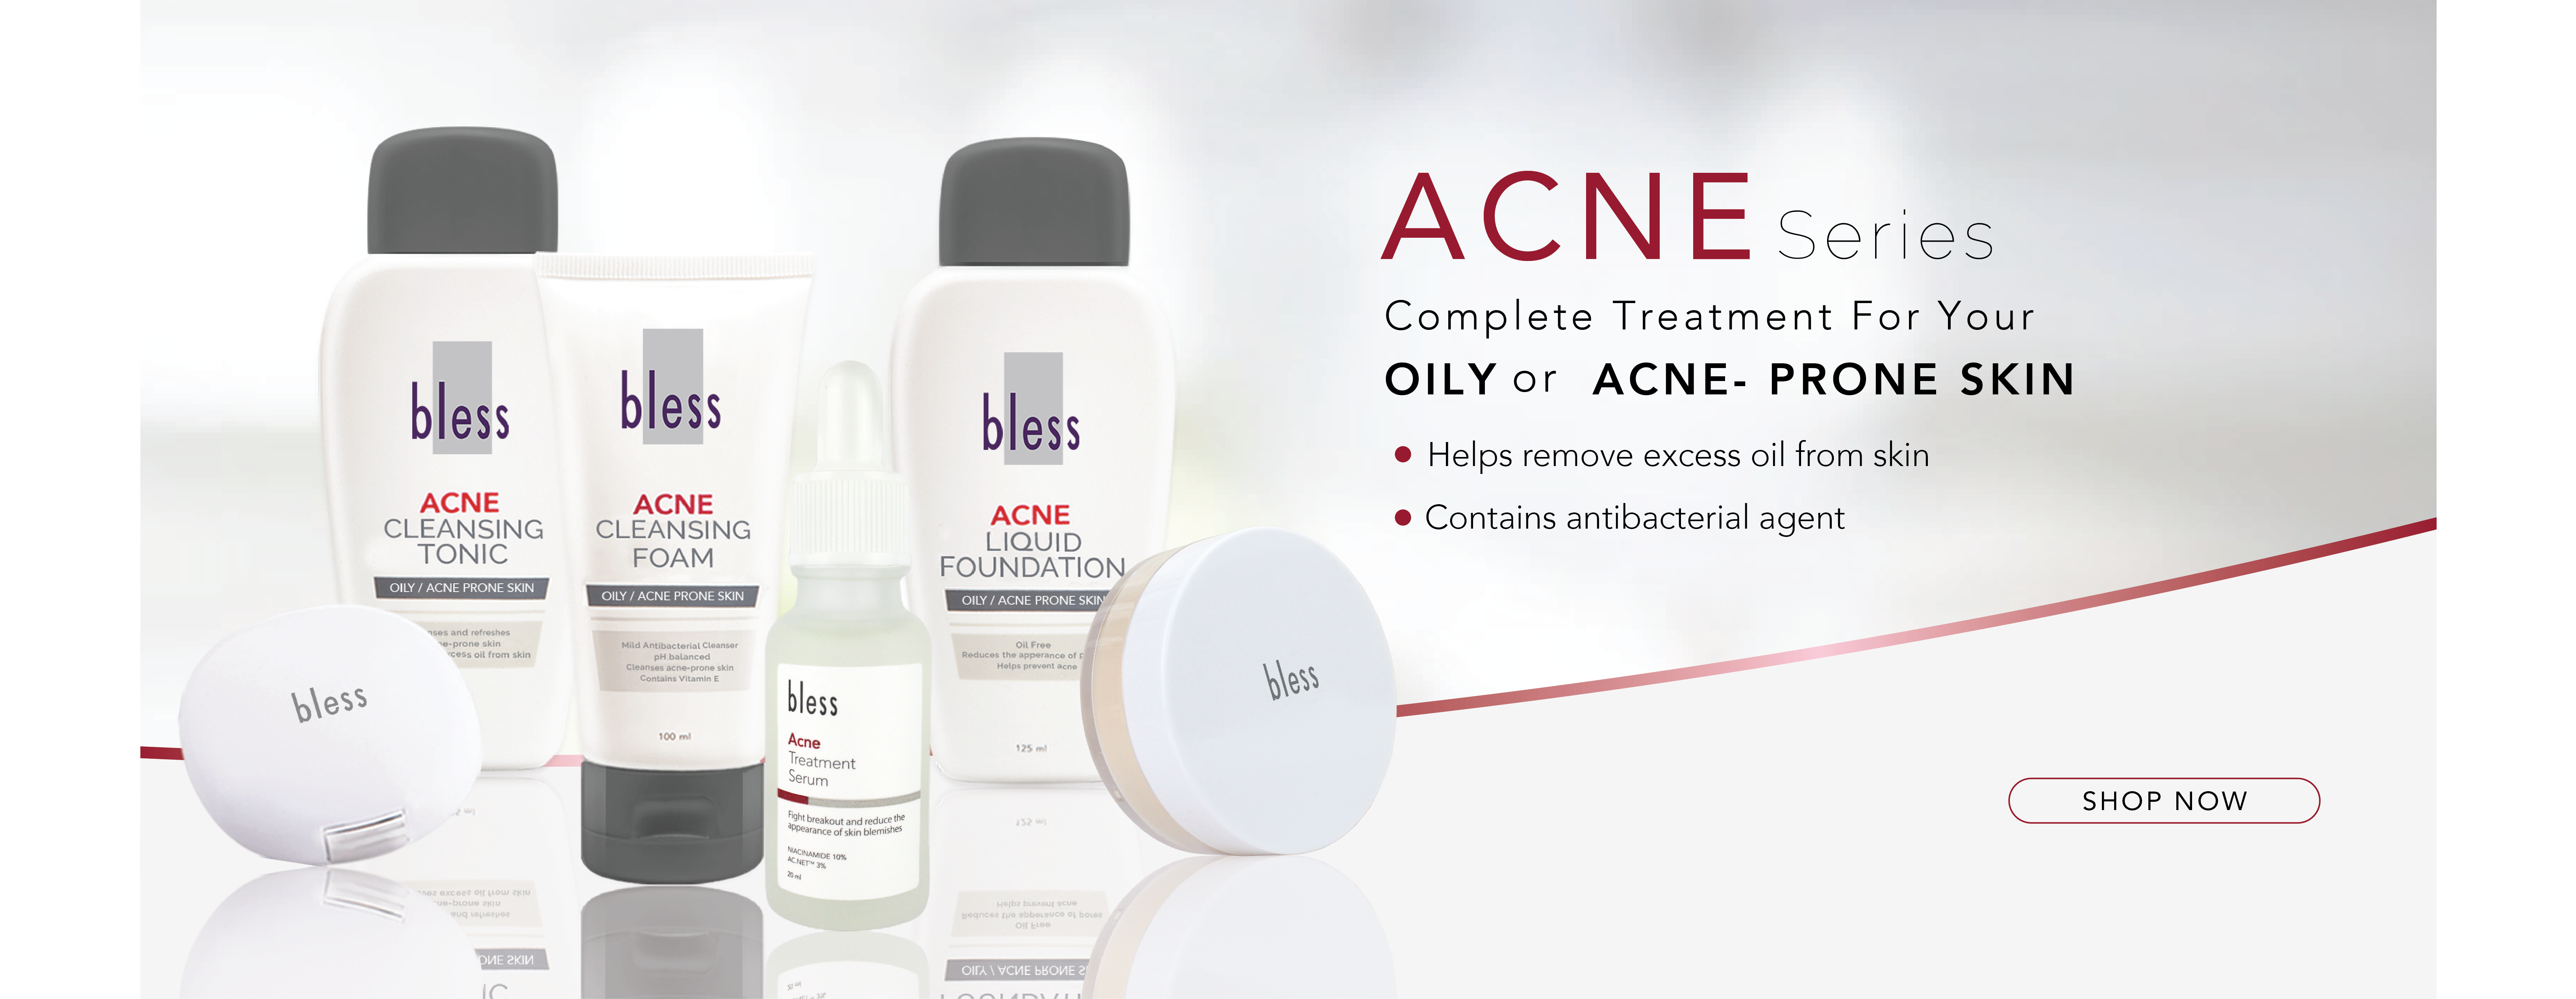 Acne-PNG